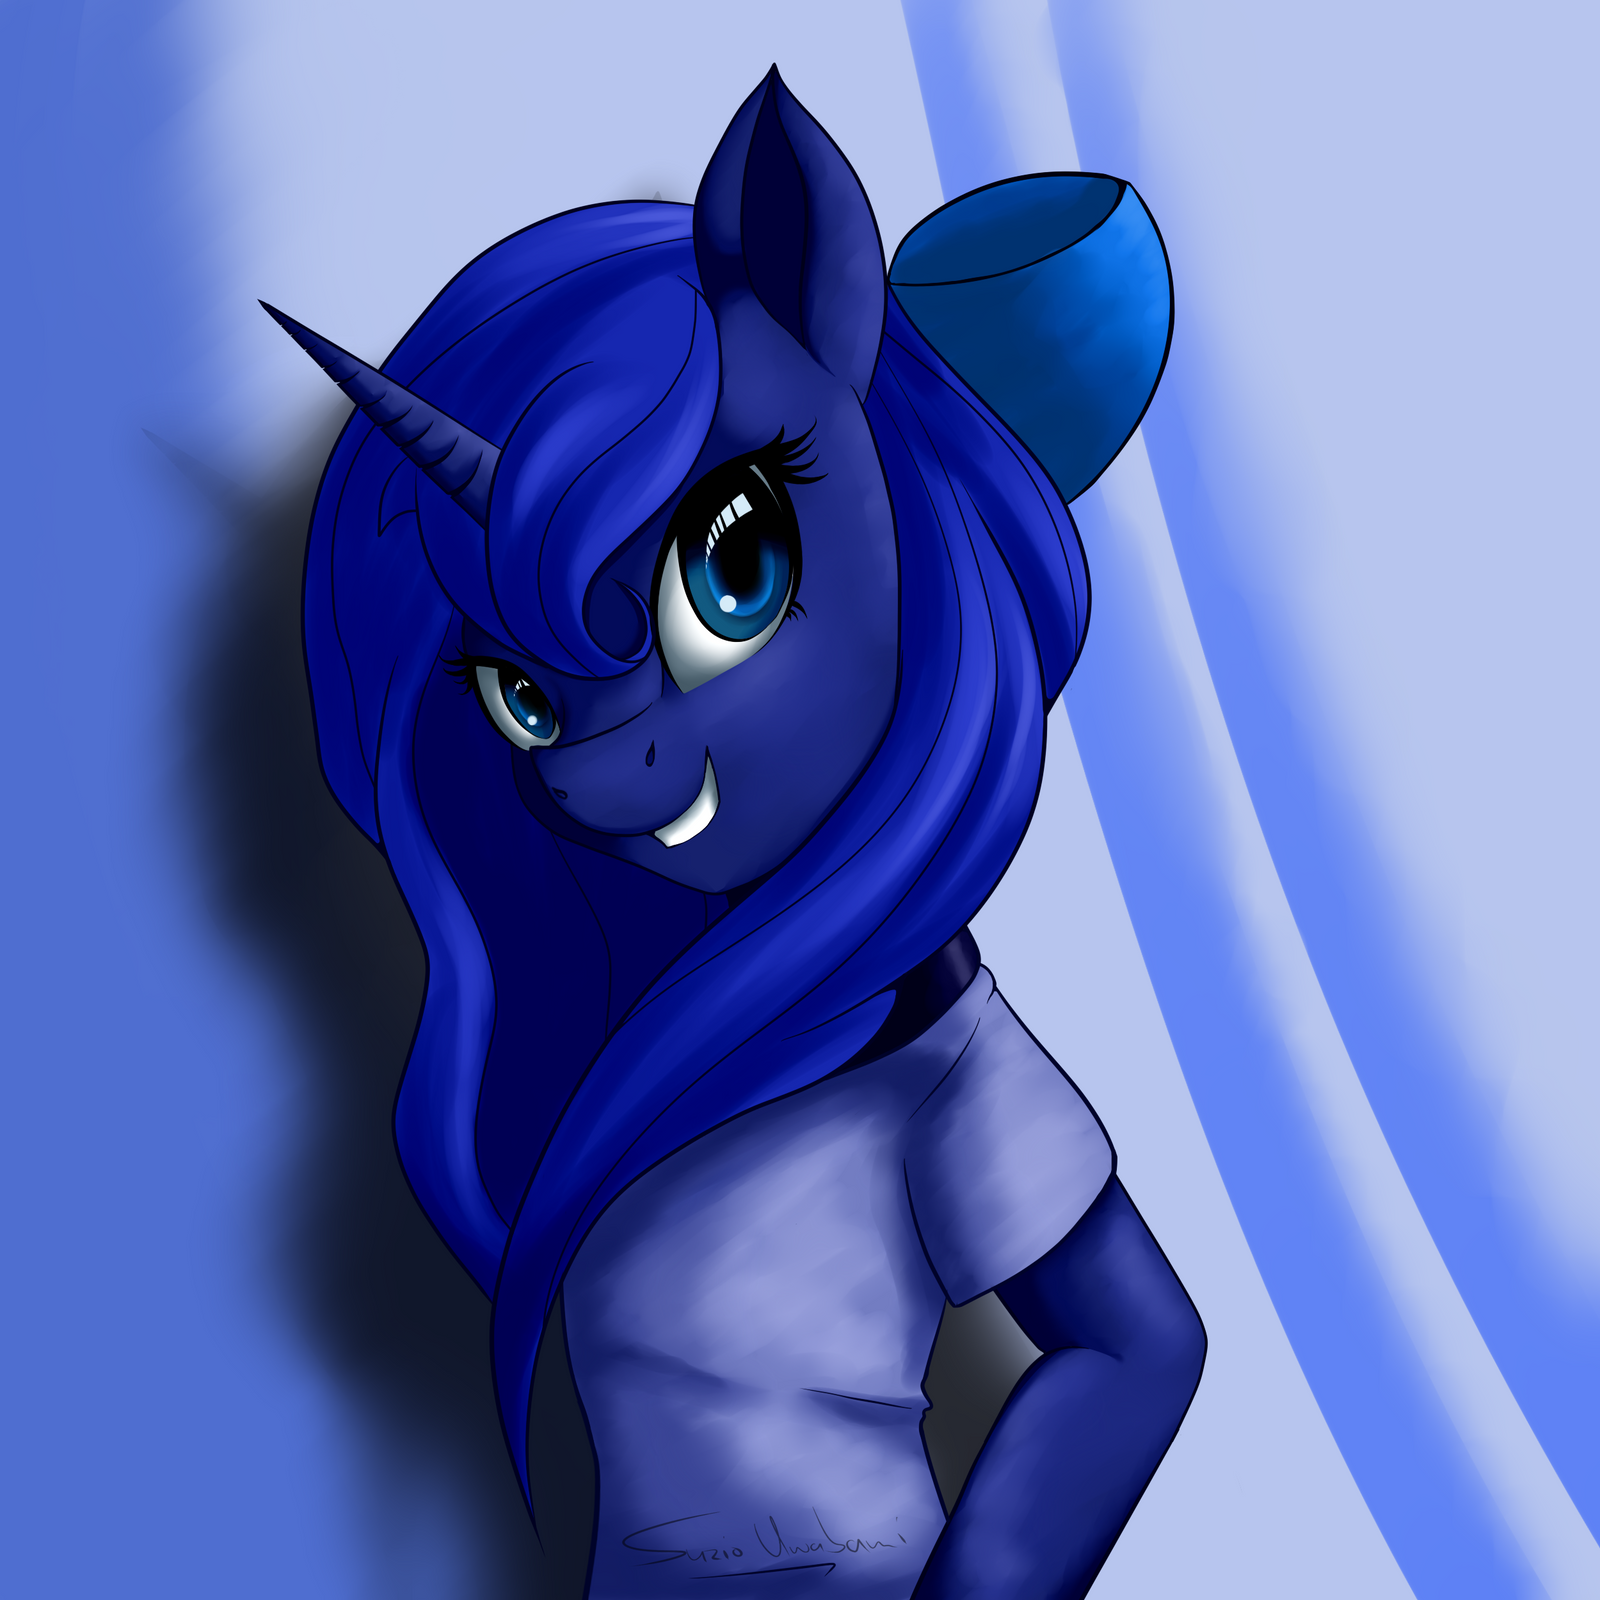 The Human Princess Luna By SuzioUwabami On DeviantArt